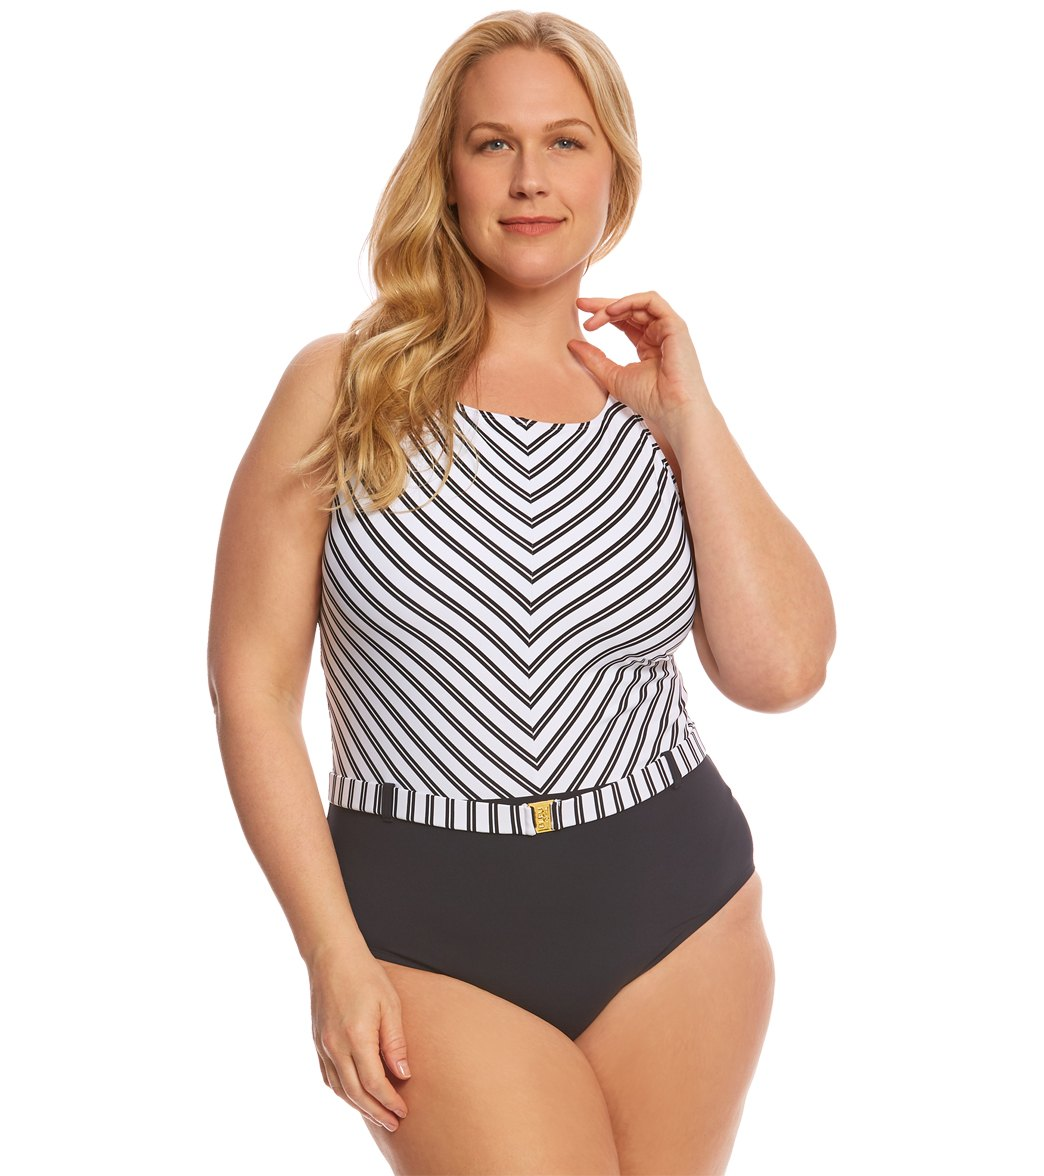 20abc3250a1 BLEU Rod Beattie Plus Size Cruise Control High Neck X-Back One Piece  Swimsuit at SwimOutlet.com - Free Shipping